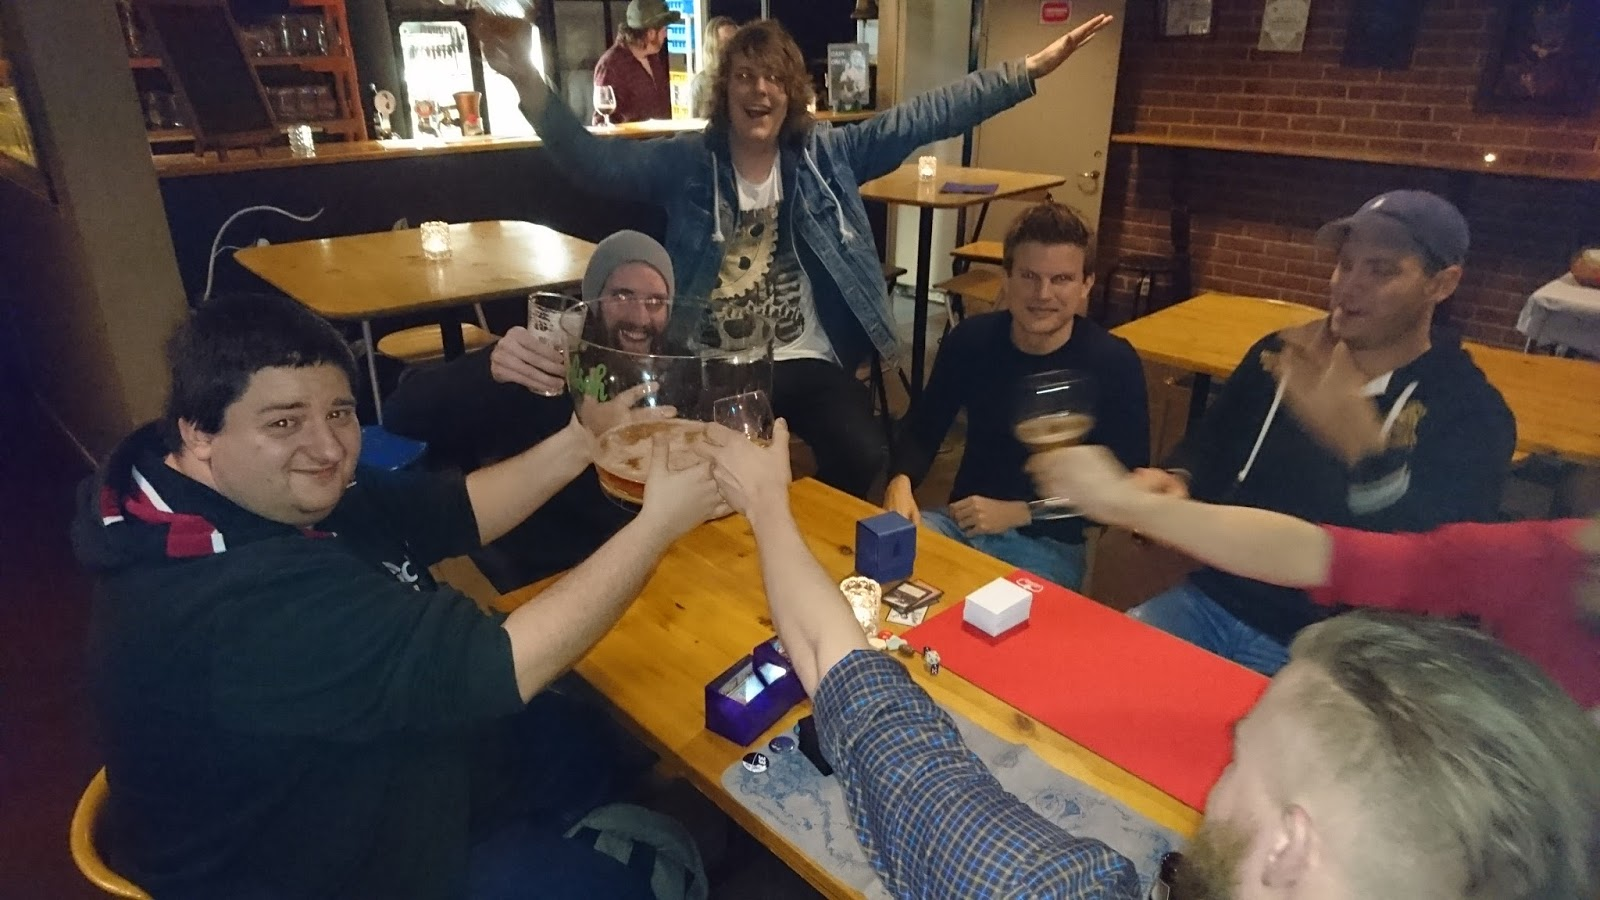 Videos and pics from n00bcon 8